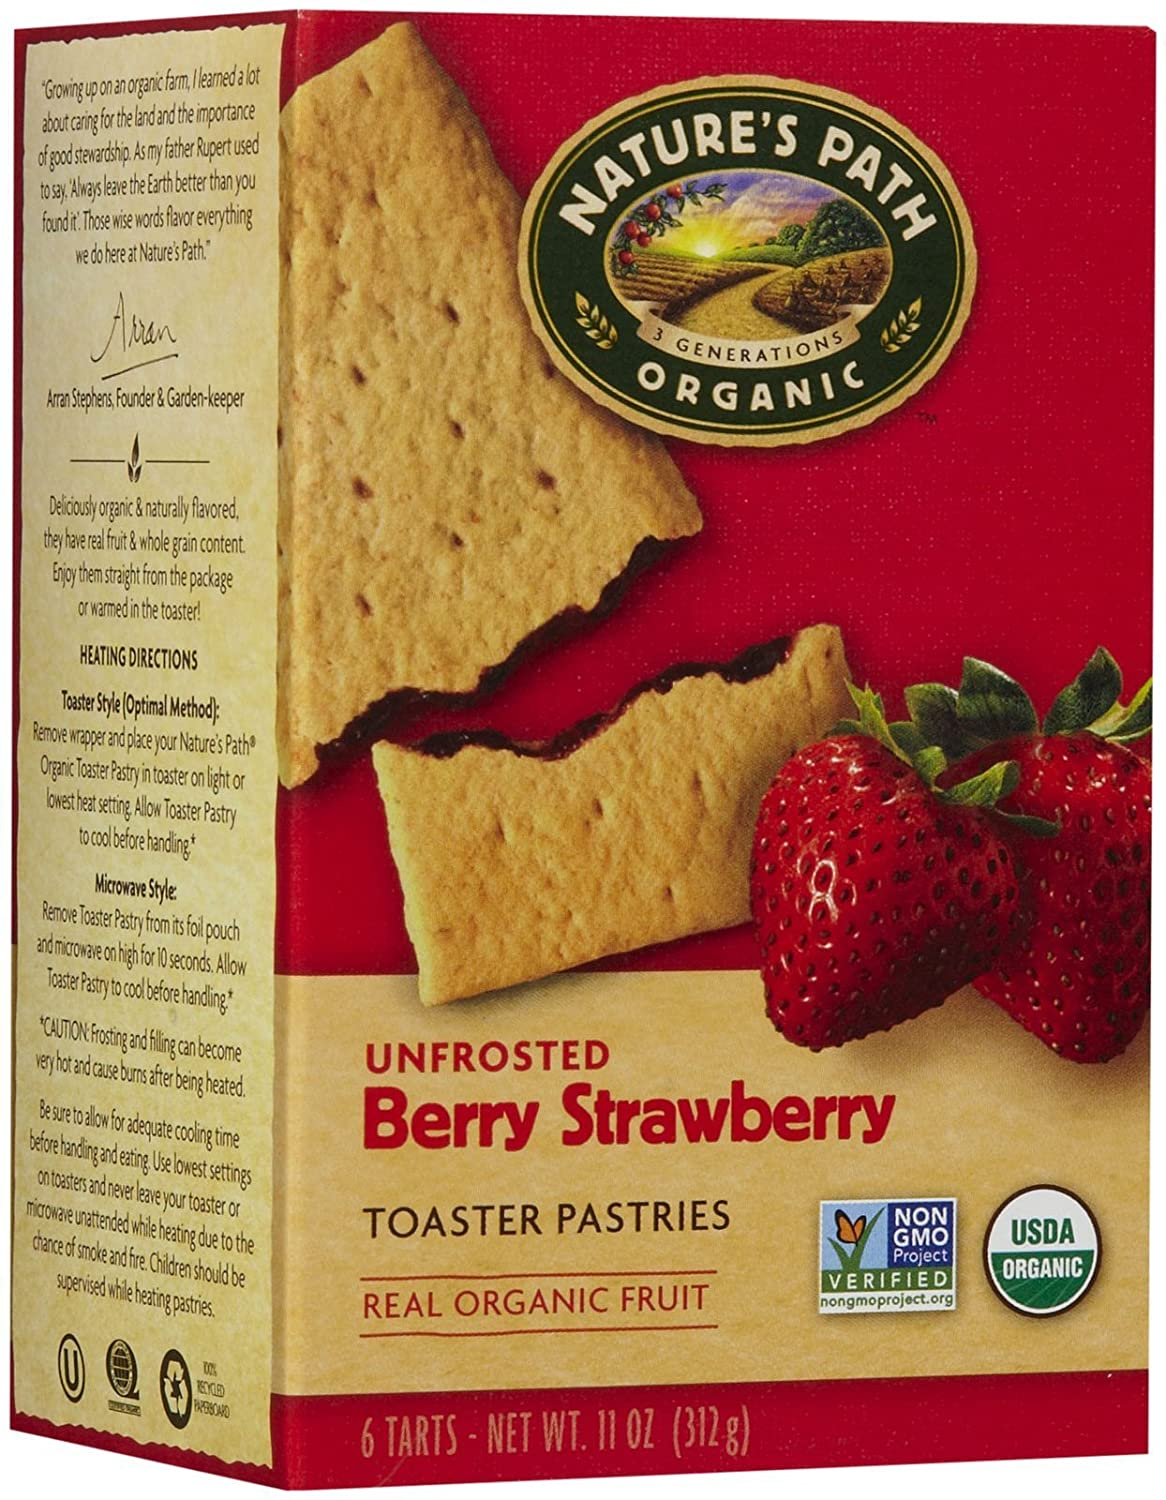 Nature's Path Un-Frosted Toaster Pastry - Strawberry - 11 oz - 6 ct